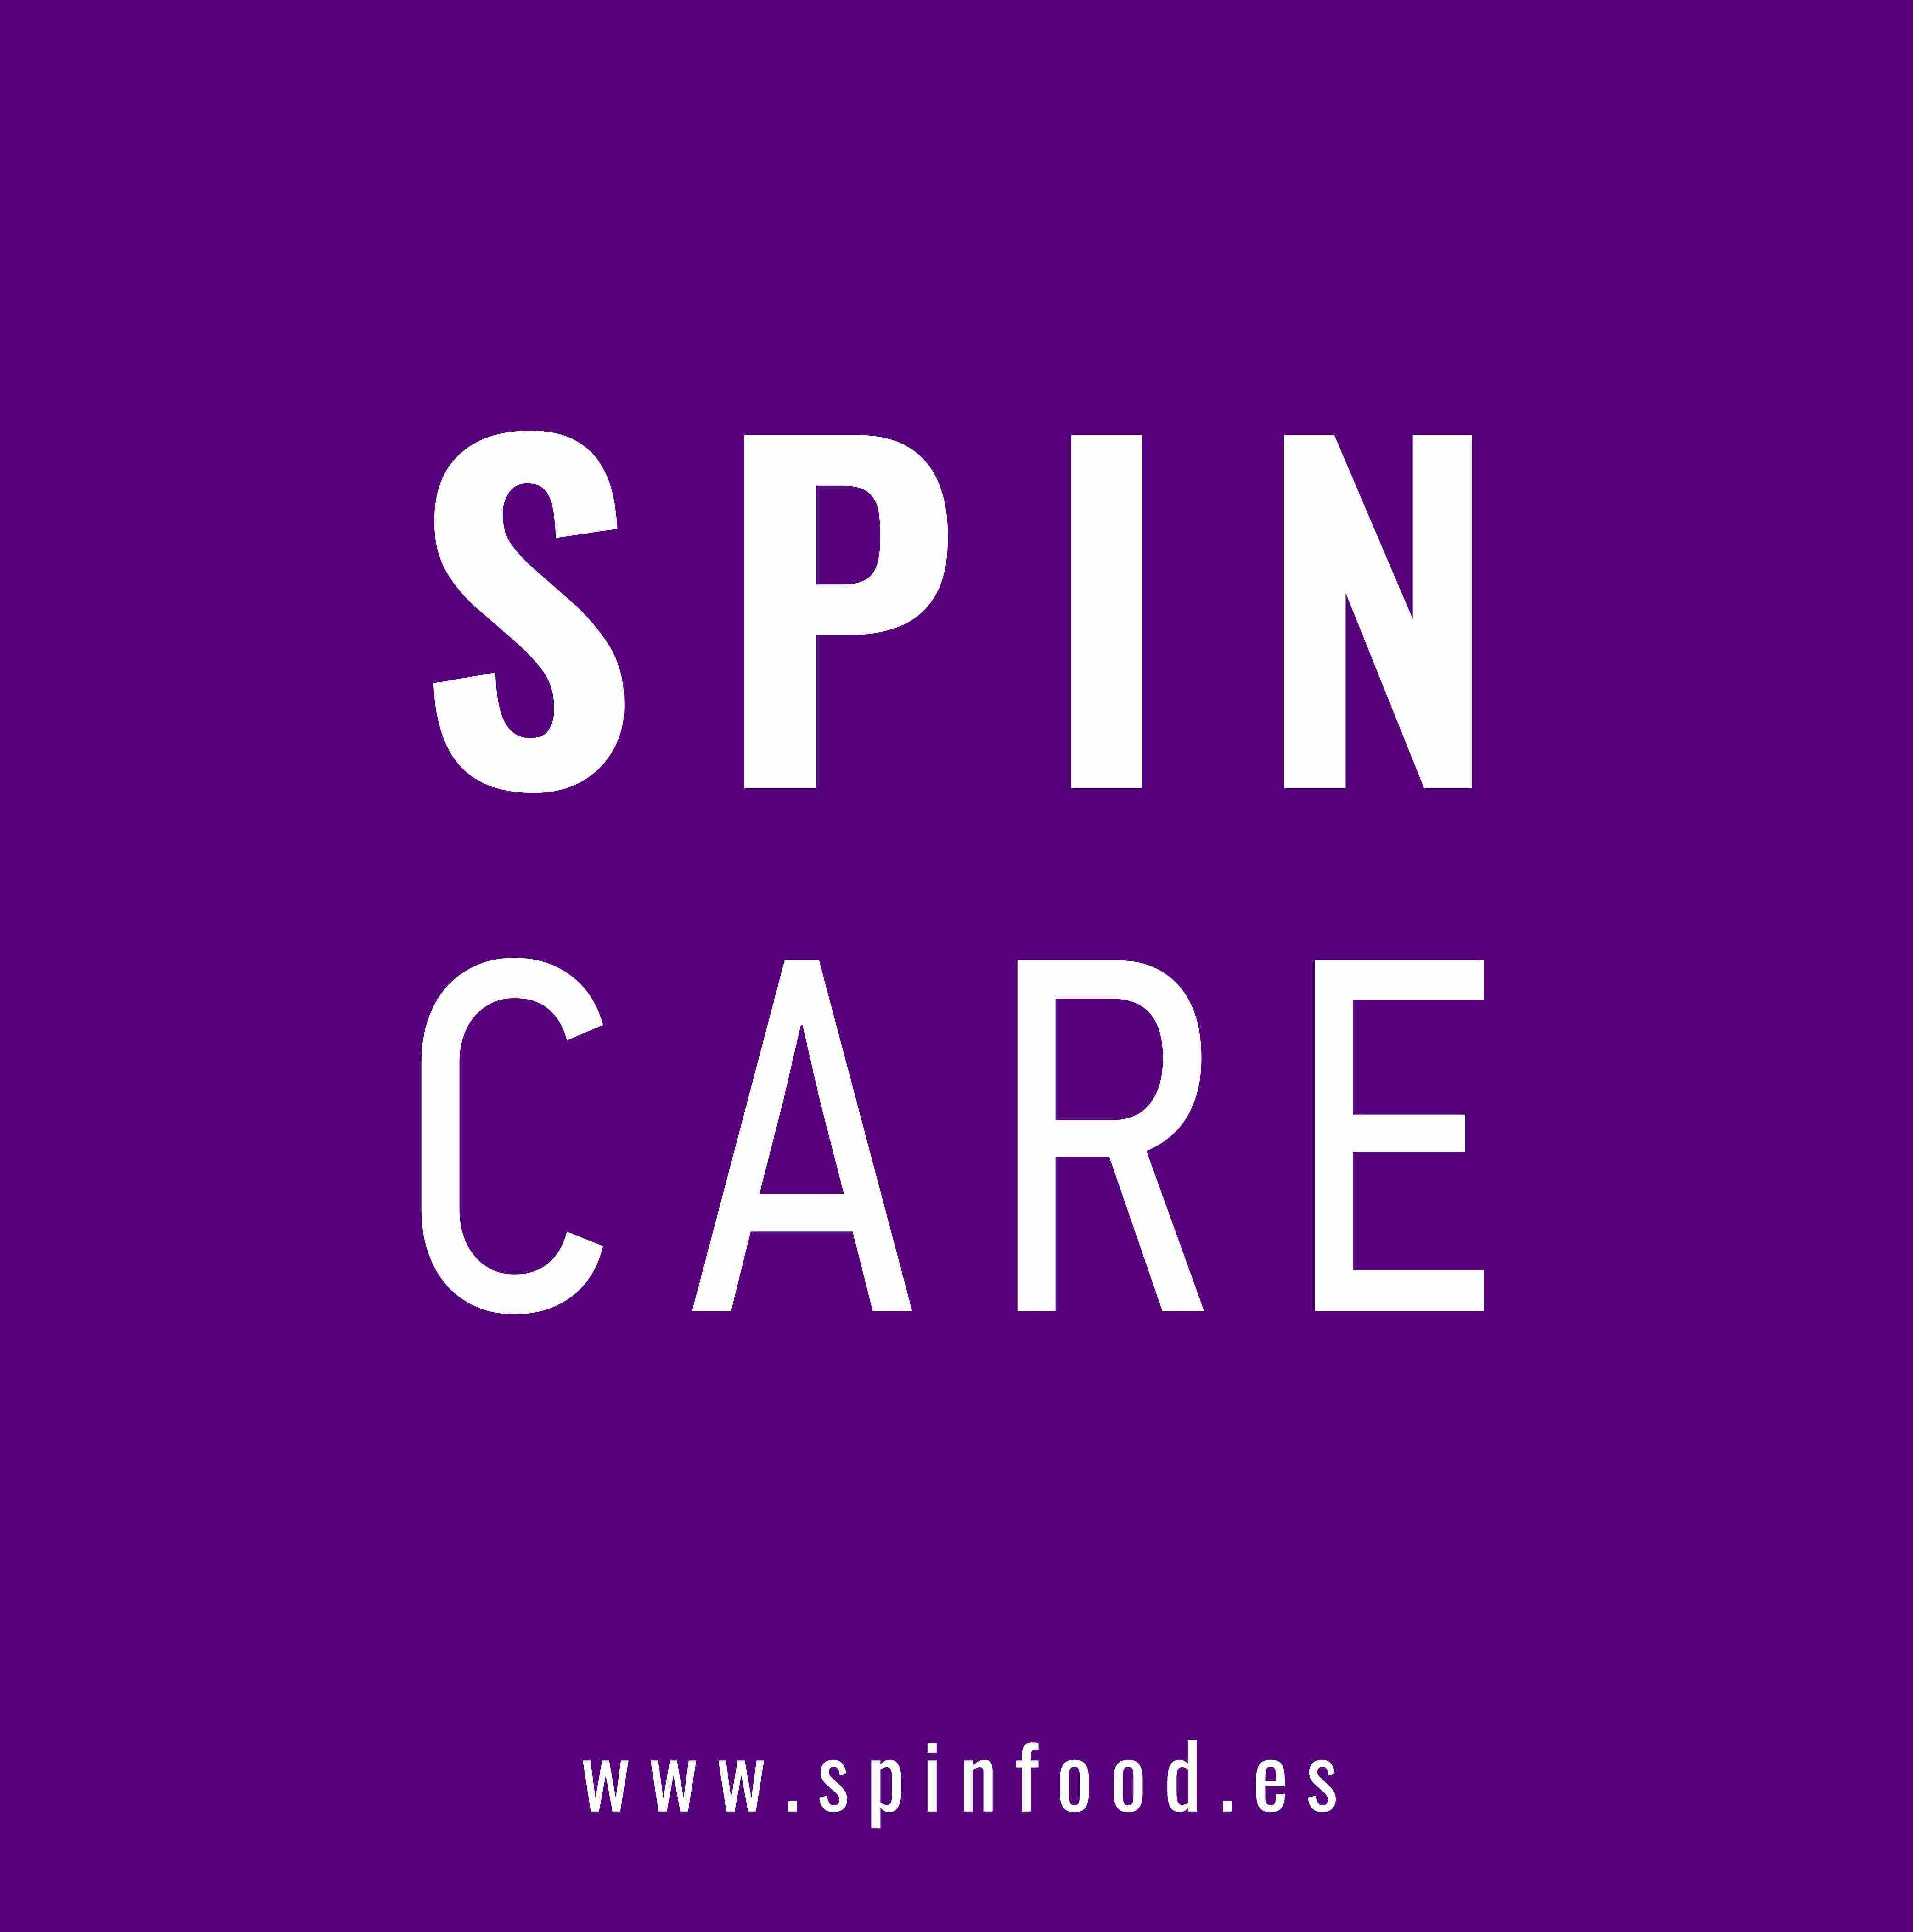 SPIN CARE